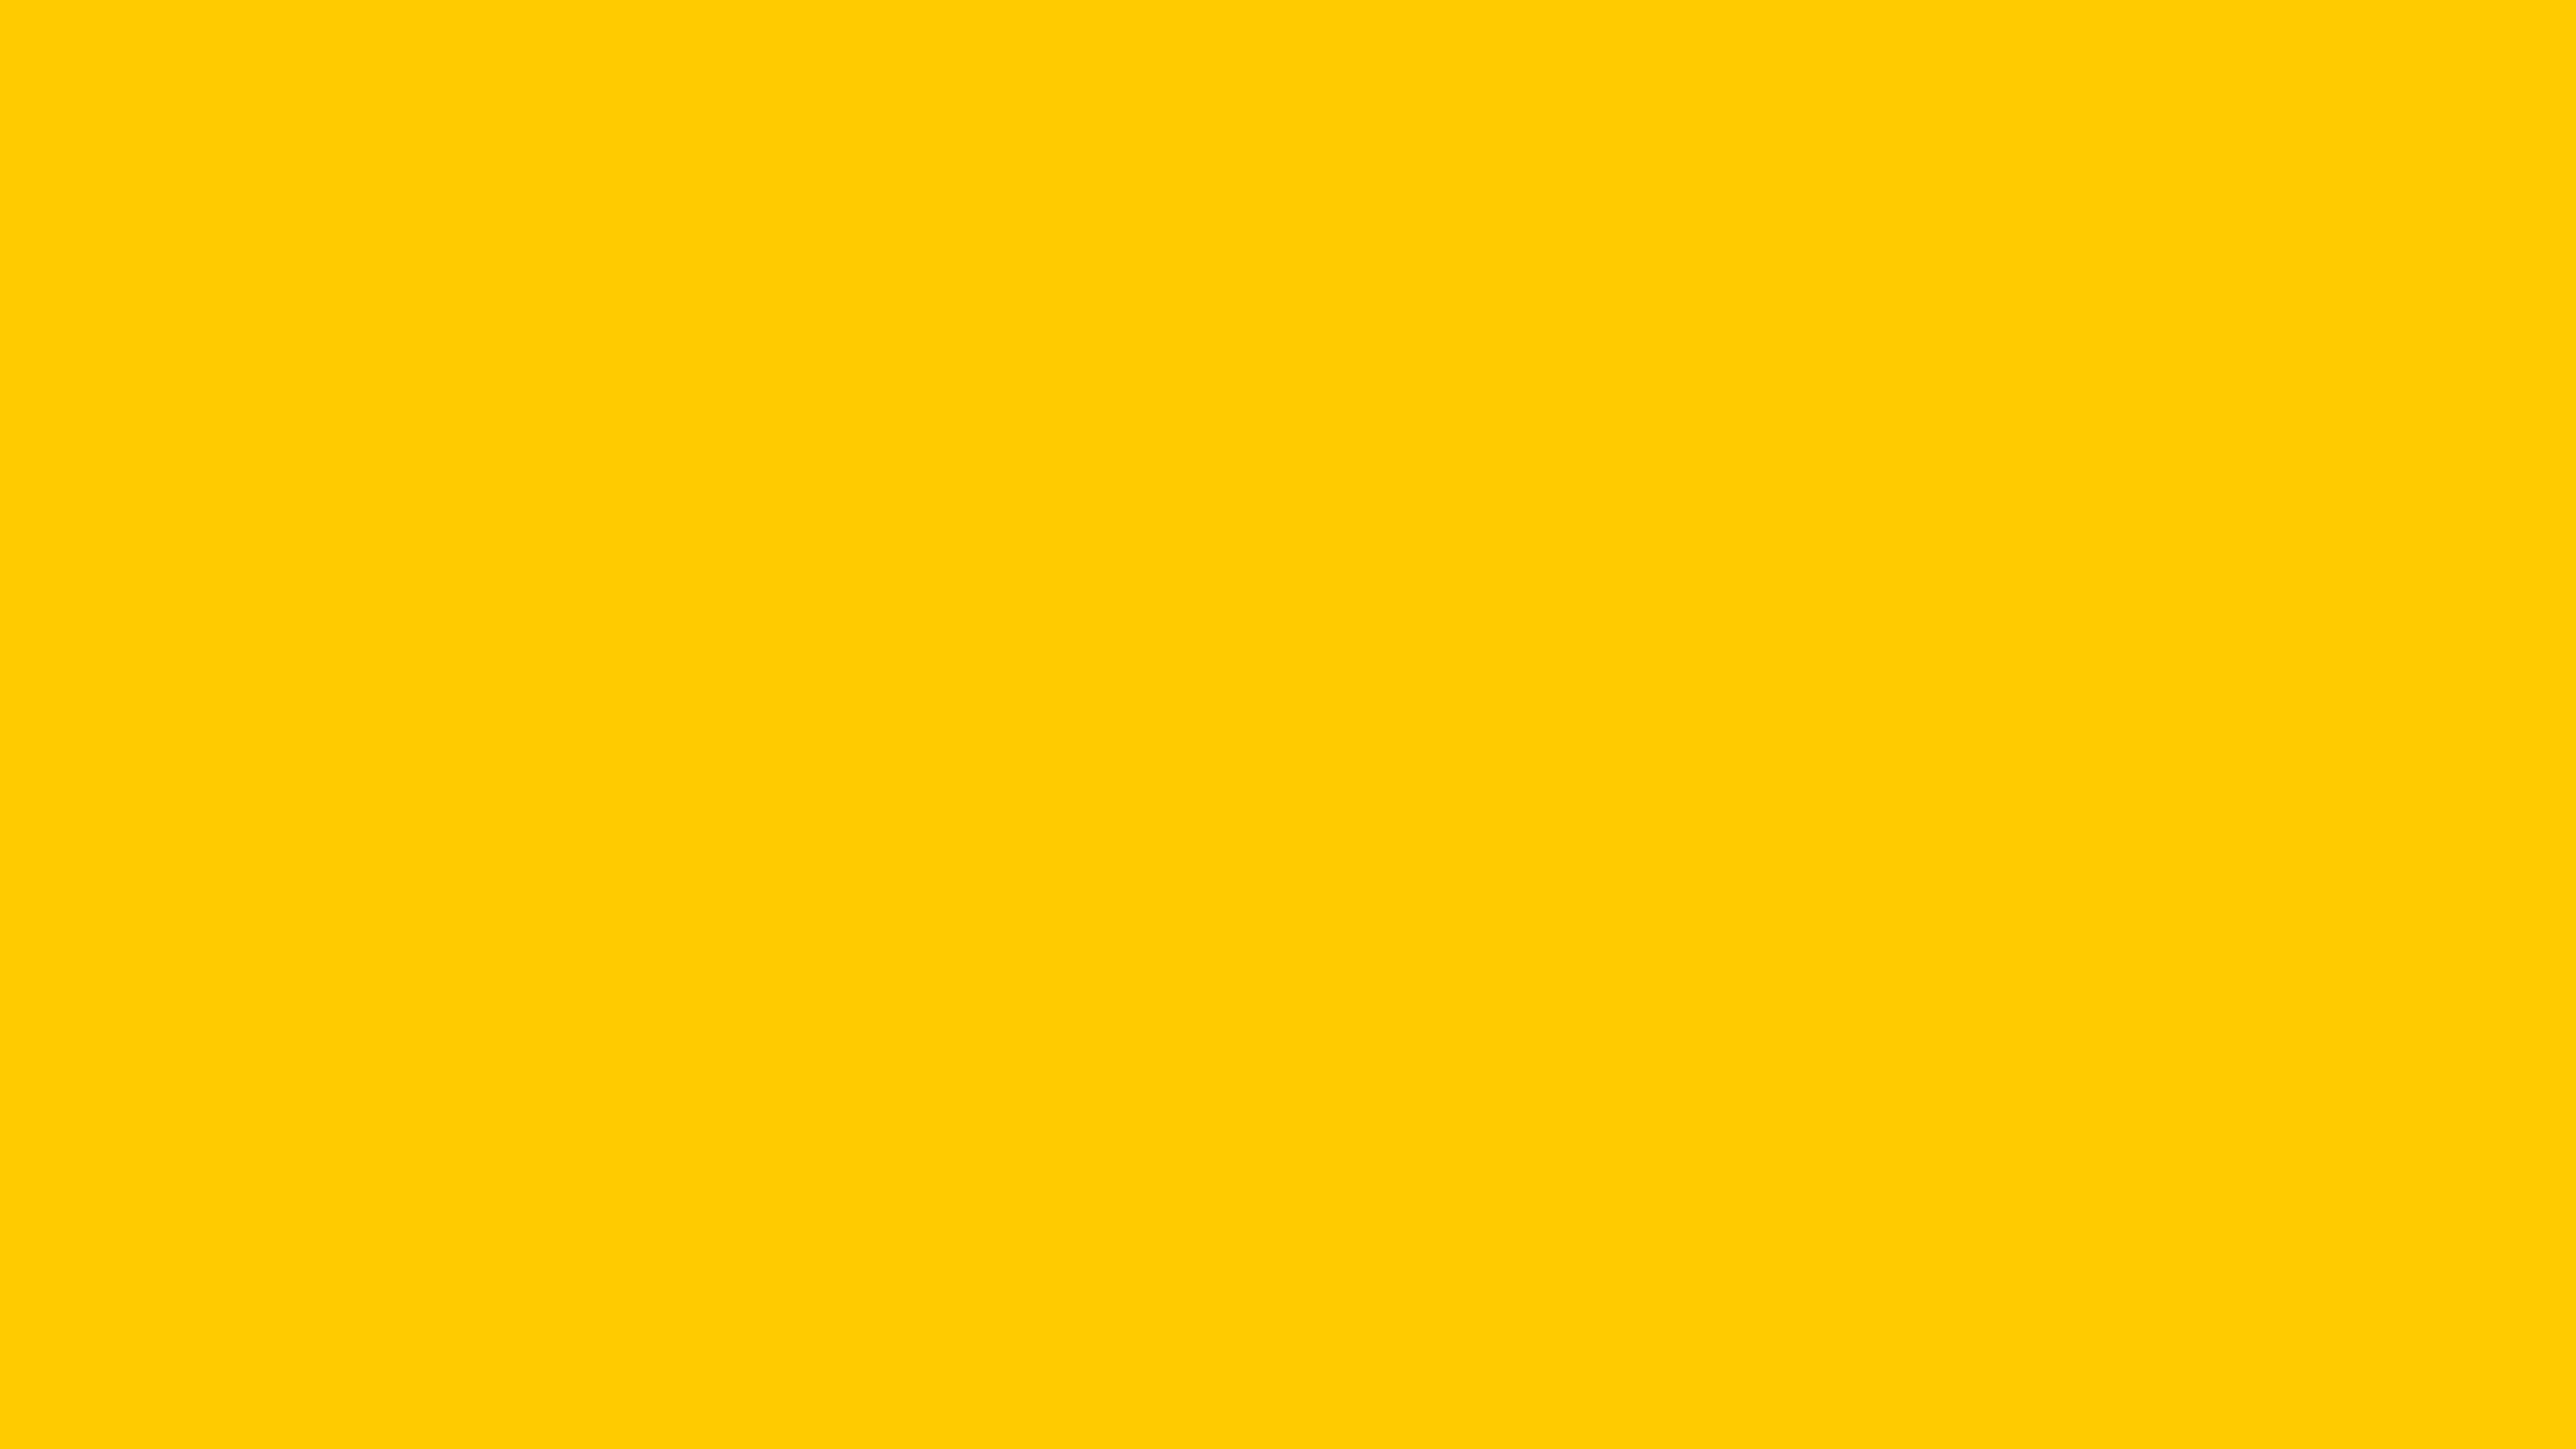 3840x2160 USC Gold Solid Color Background